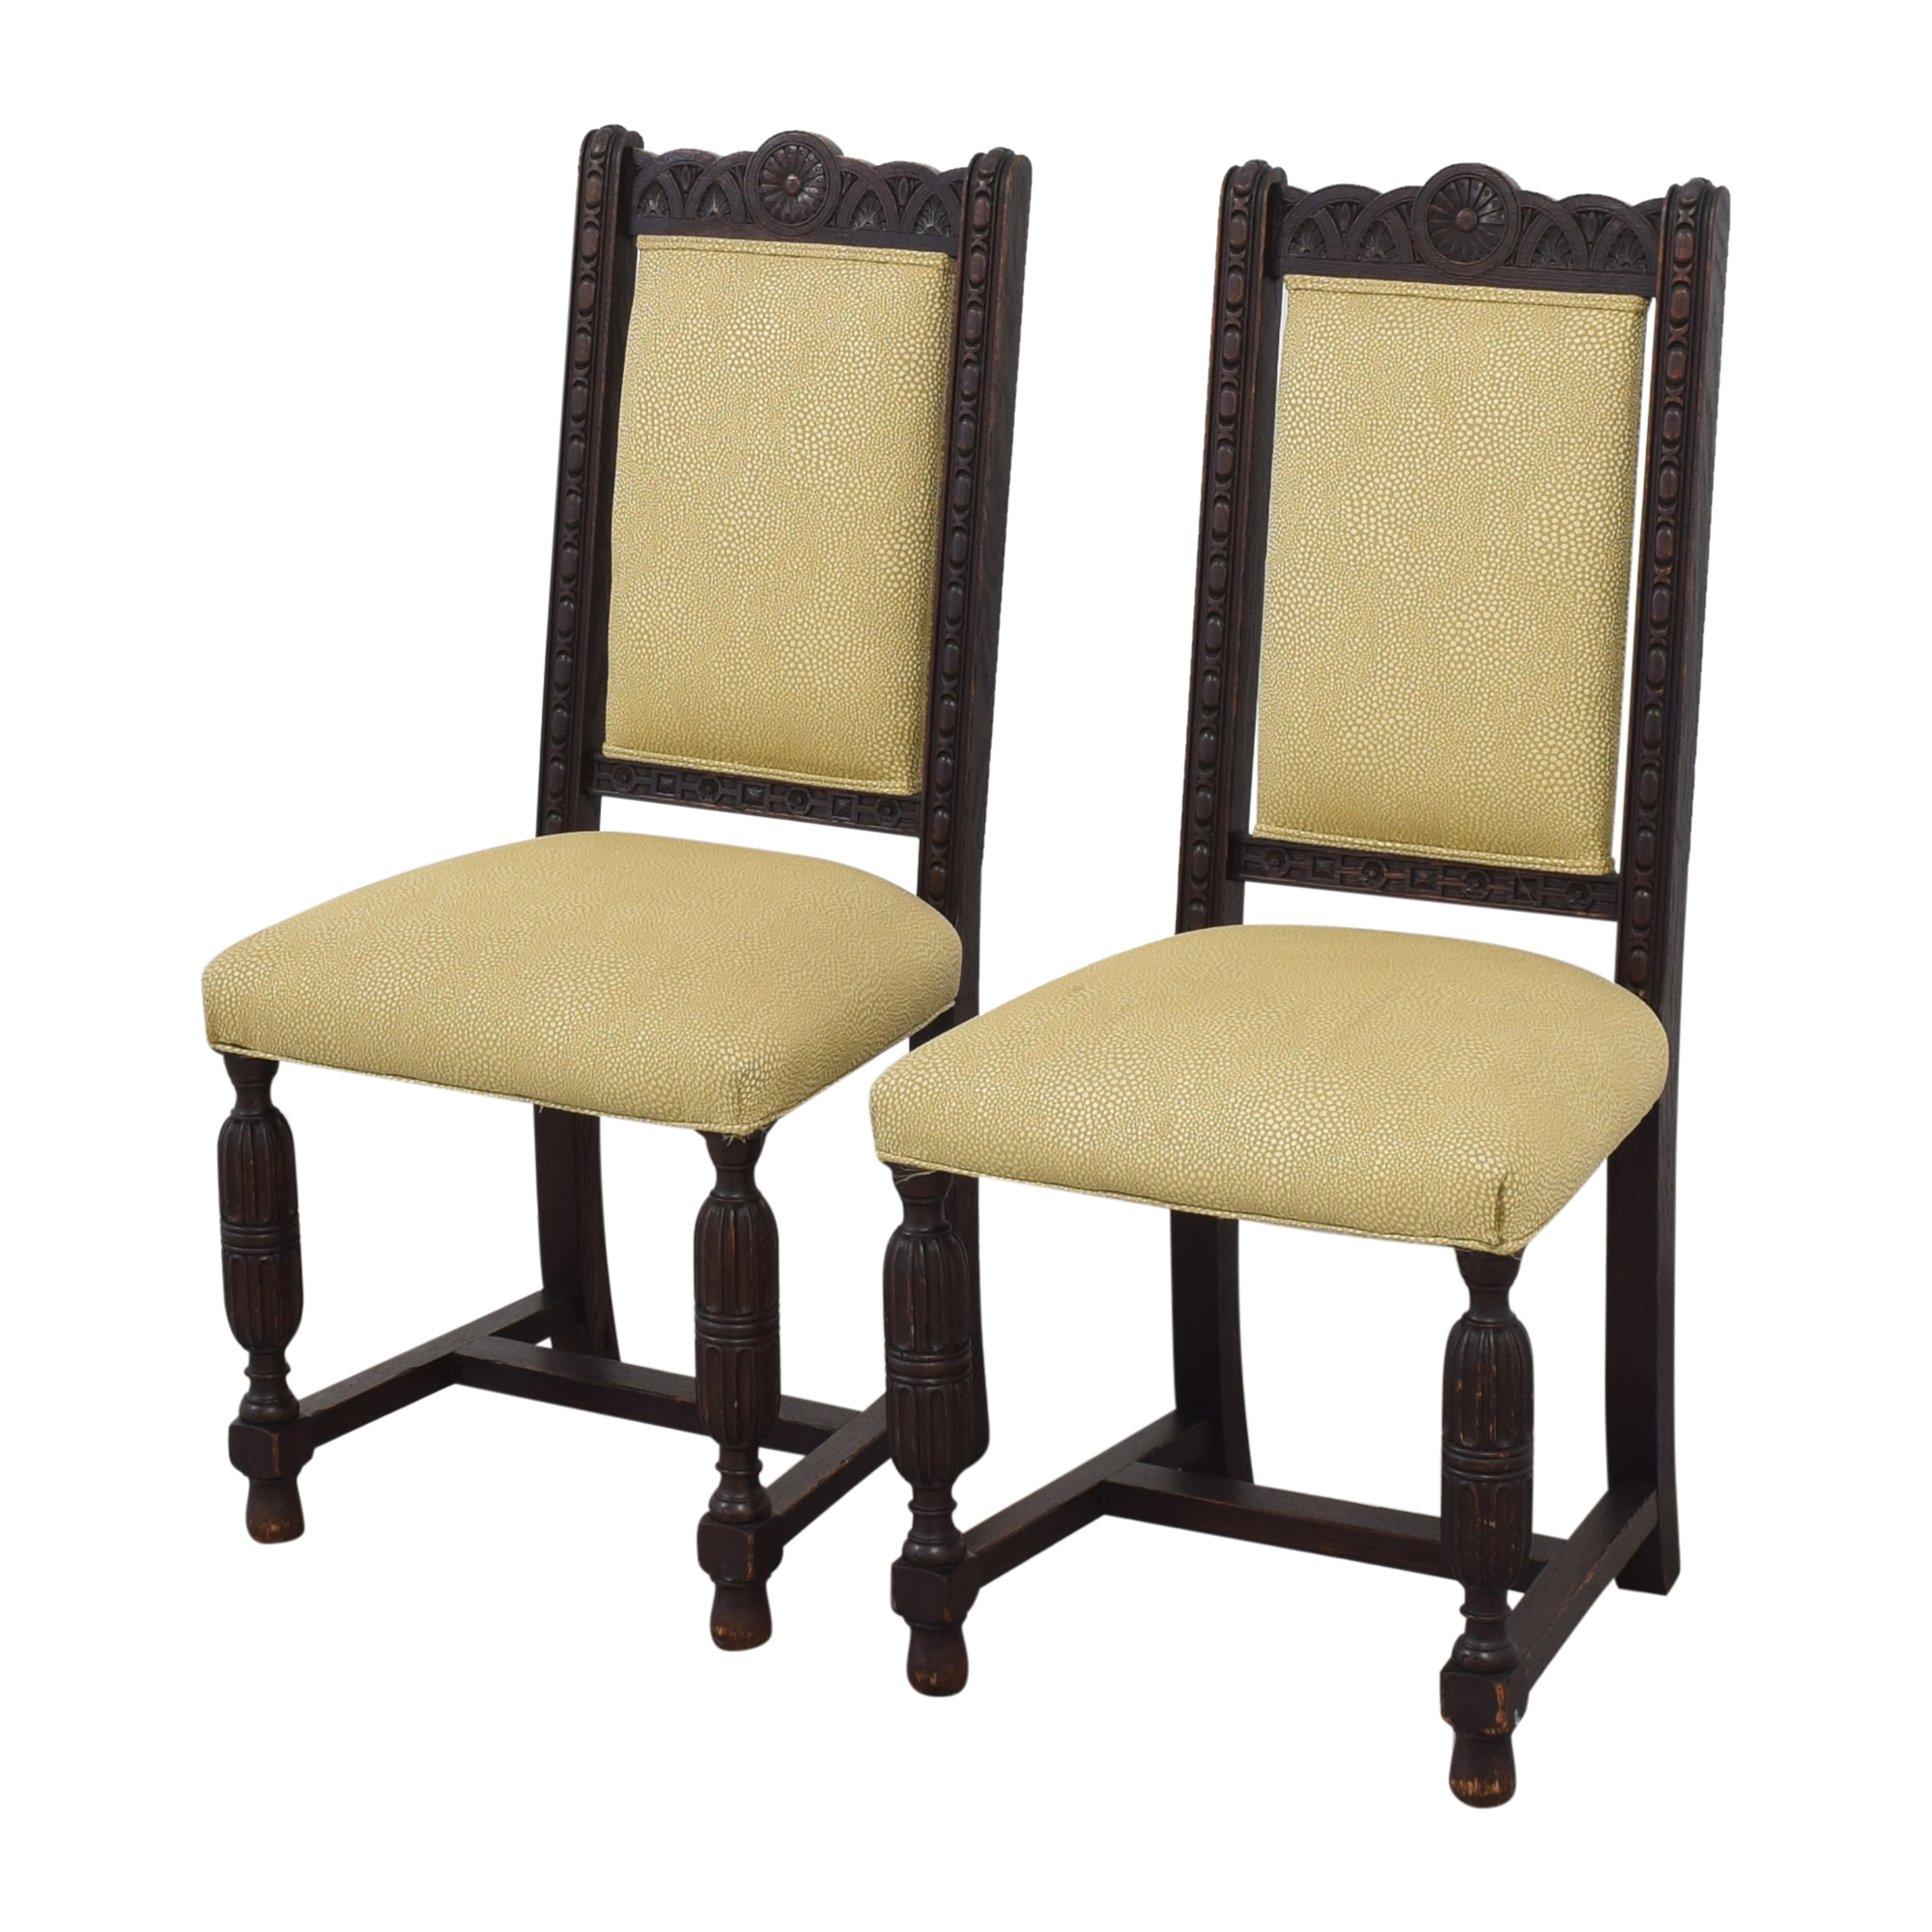 Vintage H. Lauzon Dining Chairs used